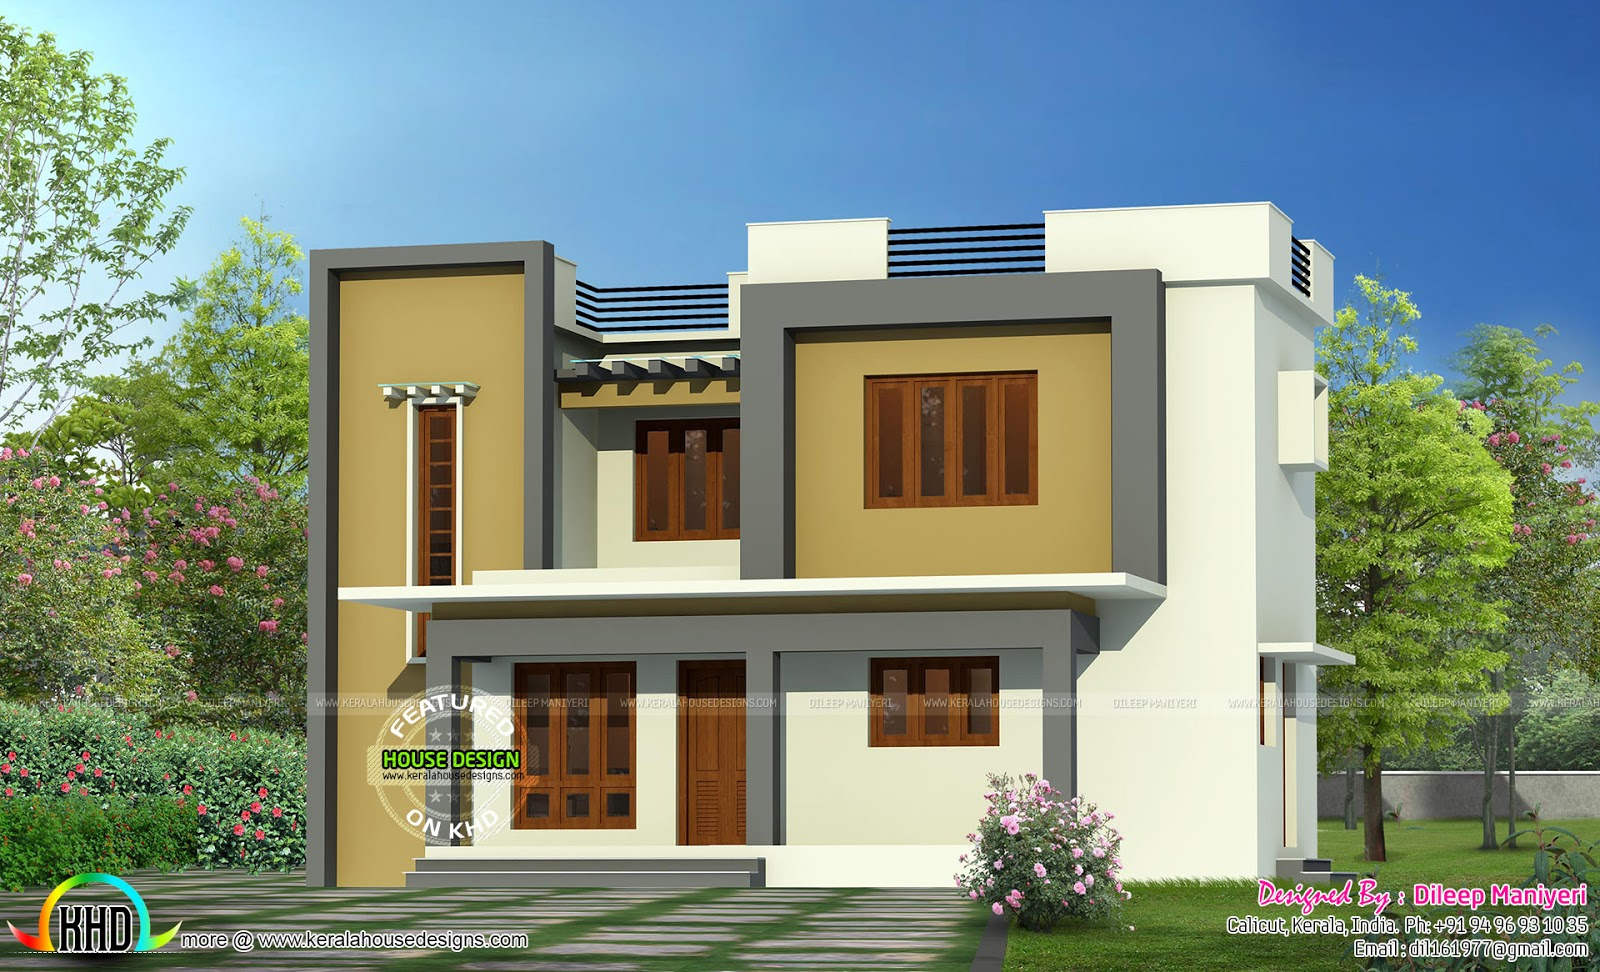 Simple flat roof home architecture kerala home design for Simple house plans